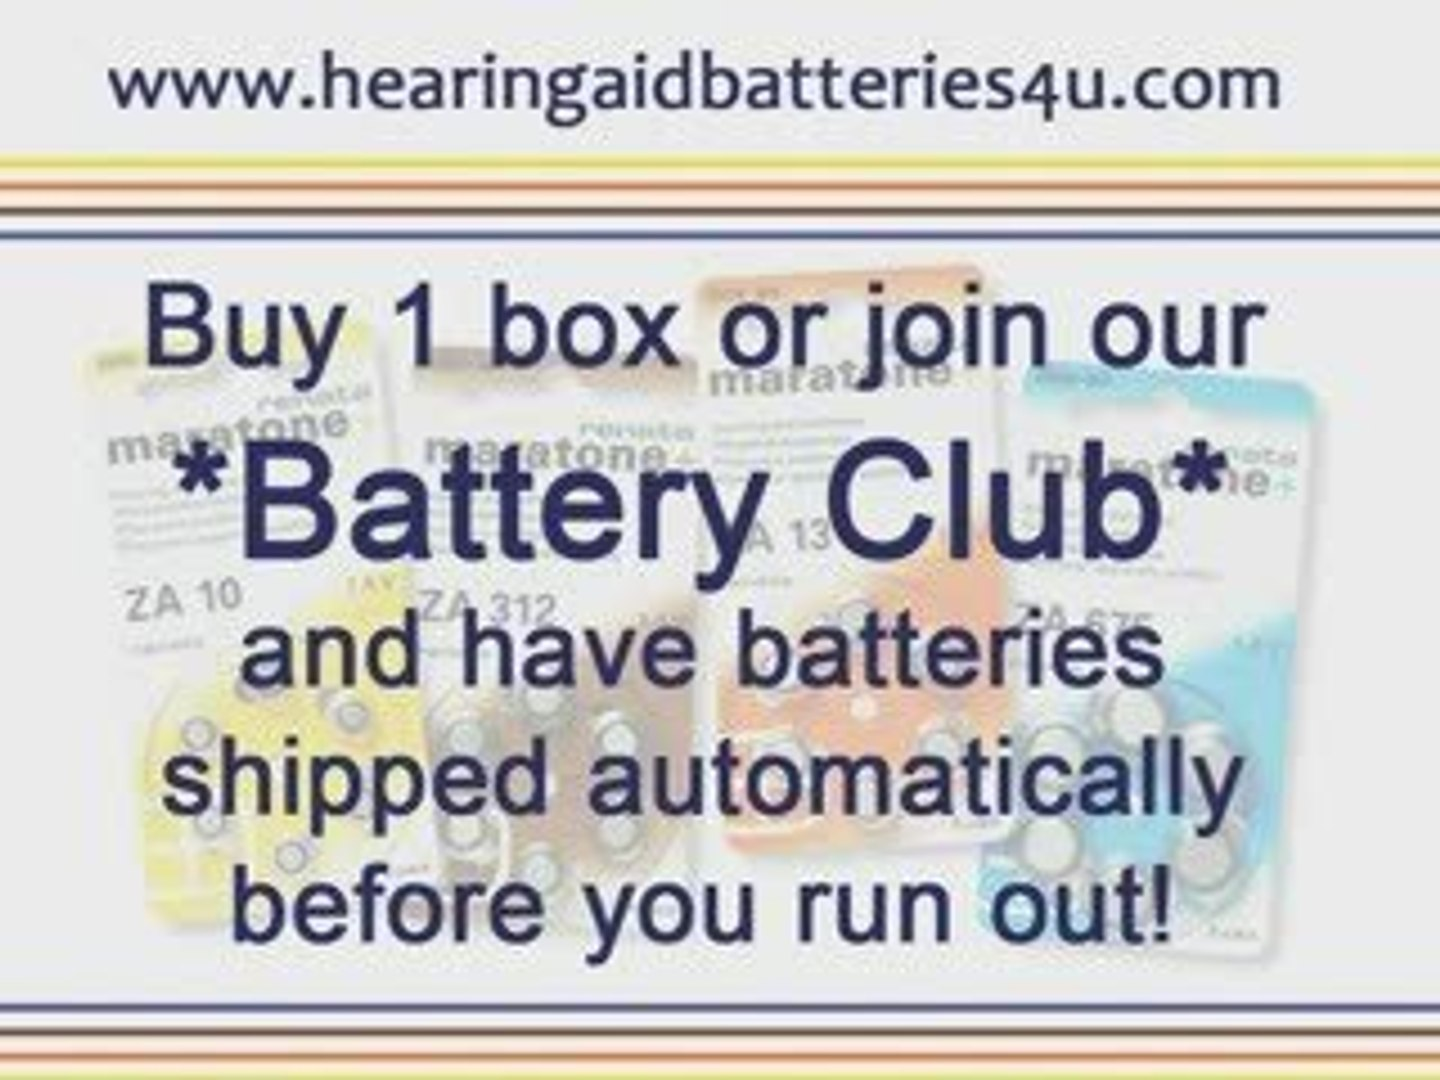 HEARING AID BATTERIES - HEARING AID BATTERIES CLUB